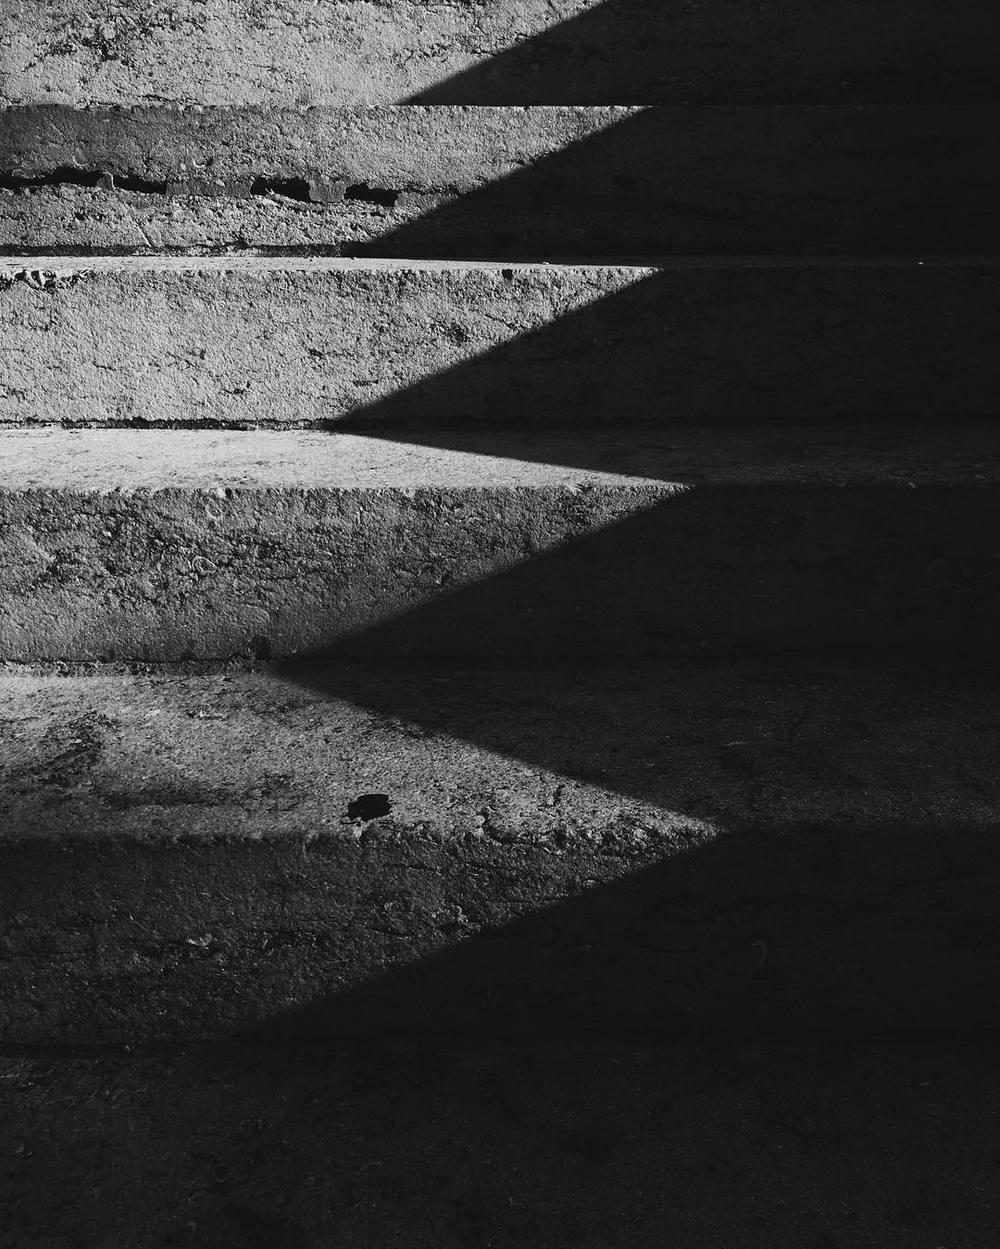 The Courthouse stairs outside get some fun angles at this time of year when the sun is at the right angle. Photo by @__will.